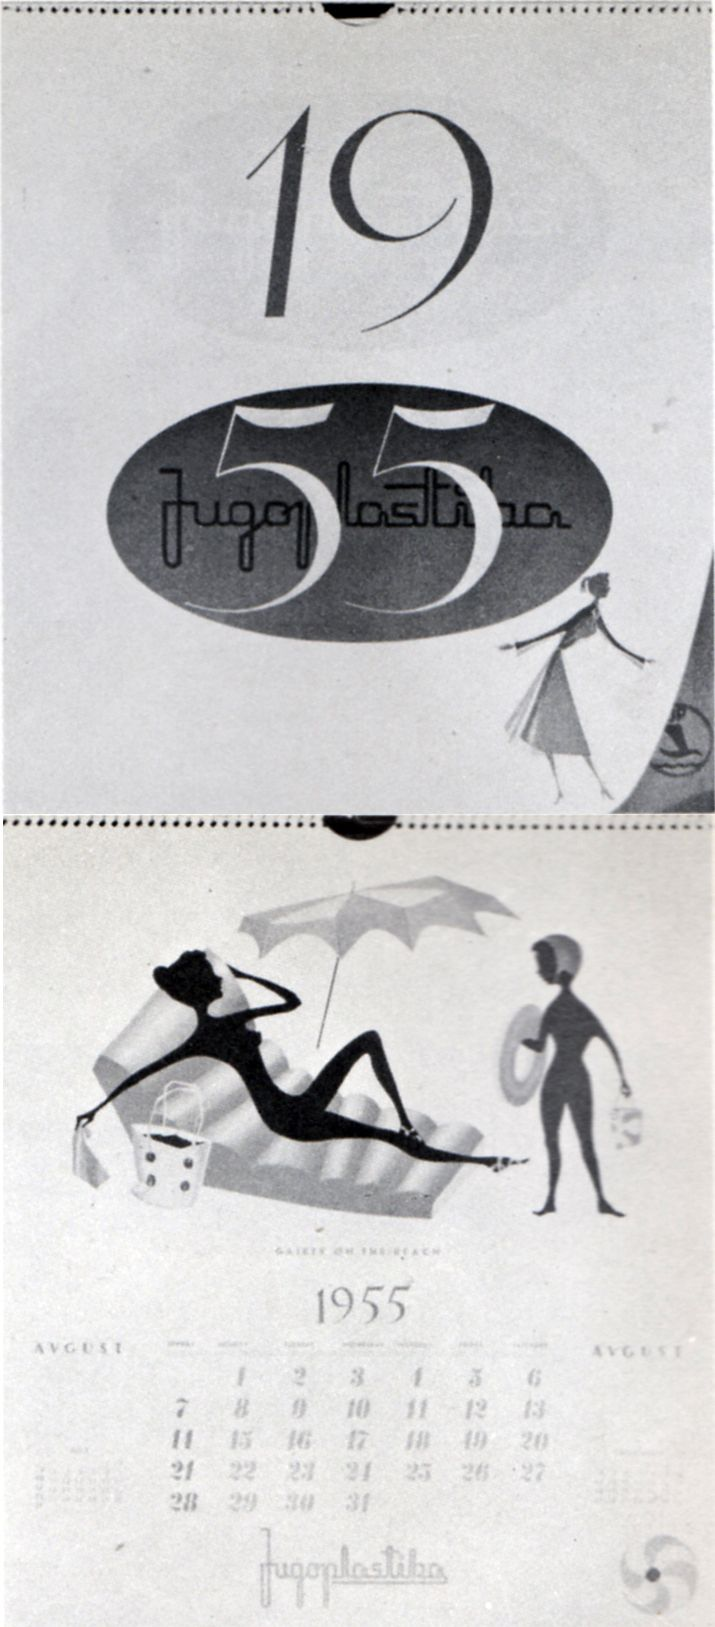 Calendar for Jugoplastika, Split, designed by Milan Vulpe, Ozeha, 1954. Jugoplastika was former large Croatian factory of footwear, leather and rubber products, and packaging, which has produced more than 3.000 products, founded in Split 1952. There was very popular slogan: Jugoplastika. Brand for the whole family. Source: Milan Vulpe Retrospective Exhibition 1945 - 1977, 12th Zagreb Salon, Zagreb